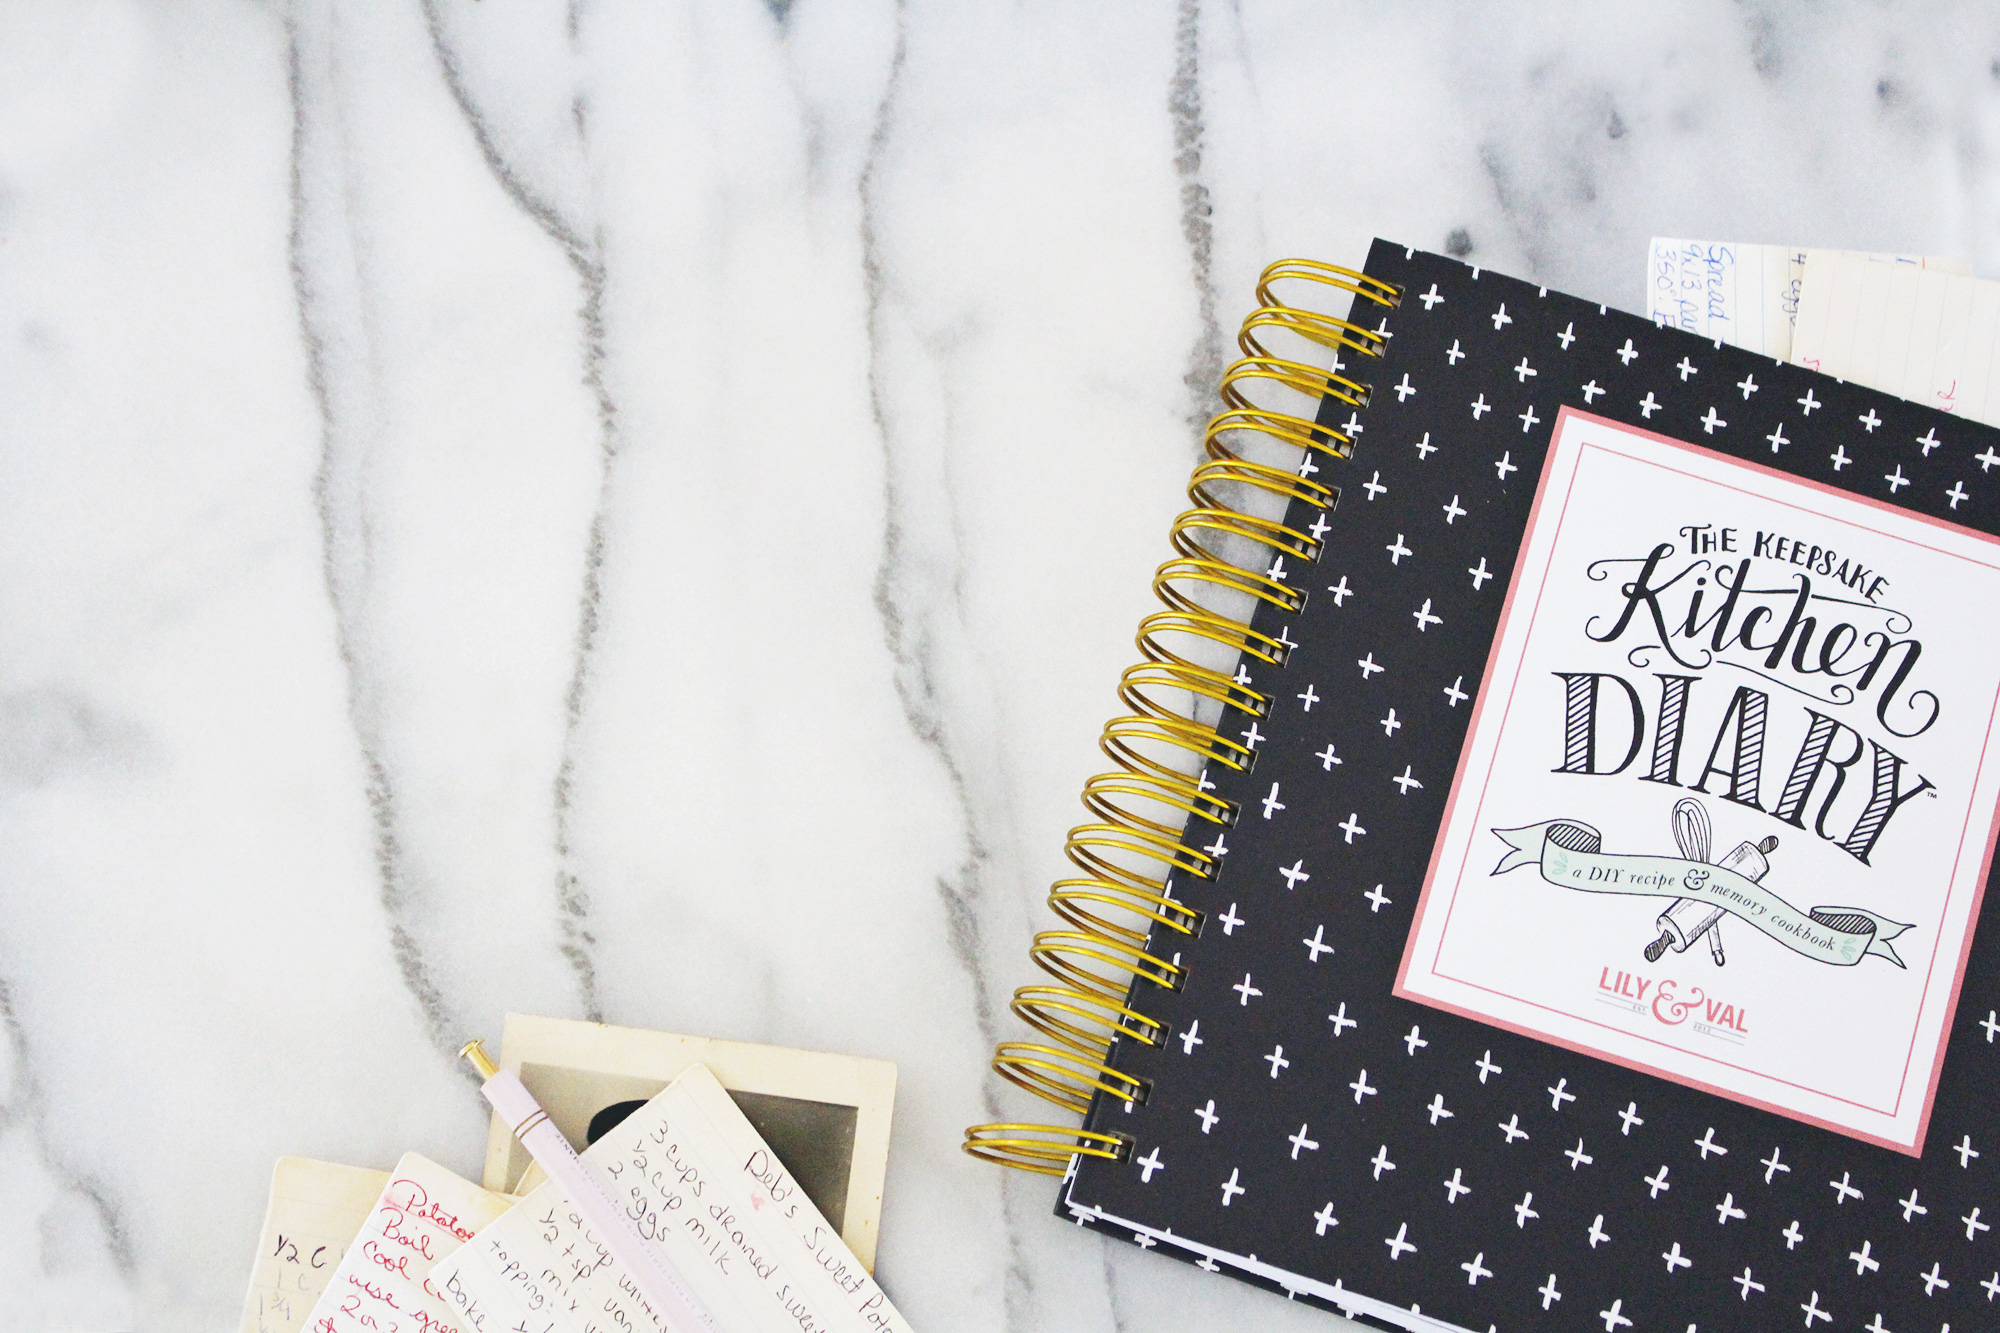 The Keepsake Kitchen Diary gets filled with special family recipes and memories. We're sharing stories from our customers and their KKDs on the blog!